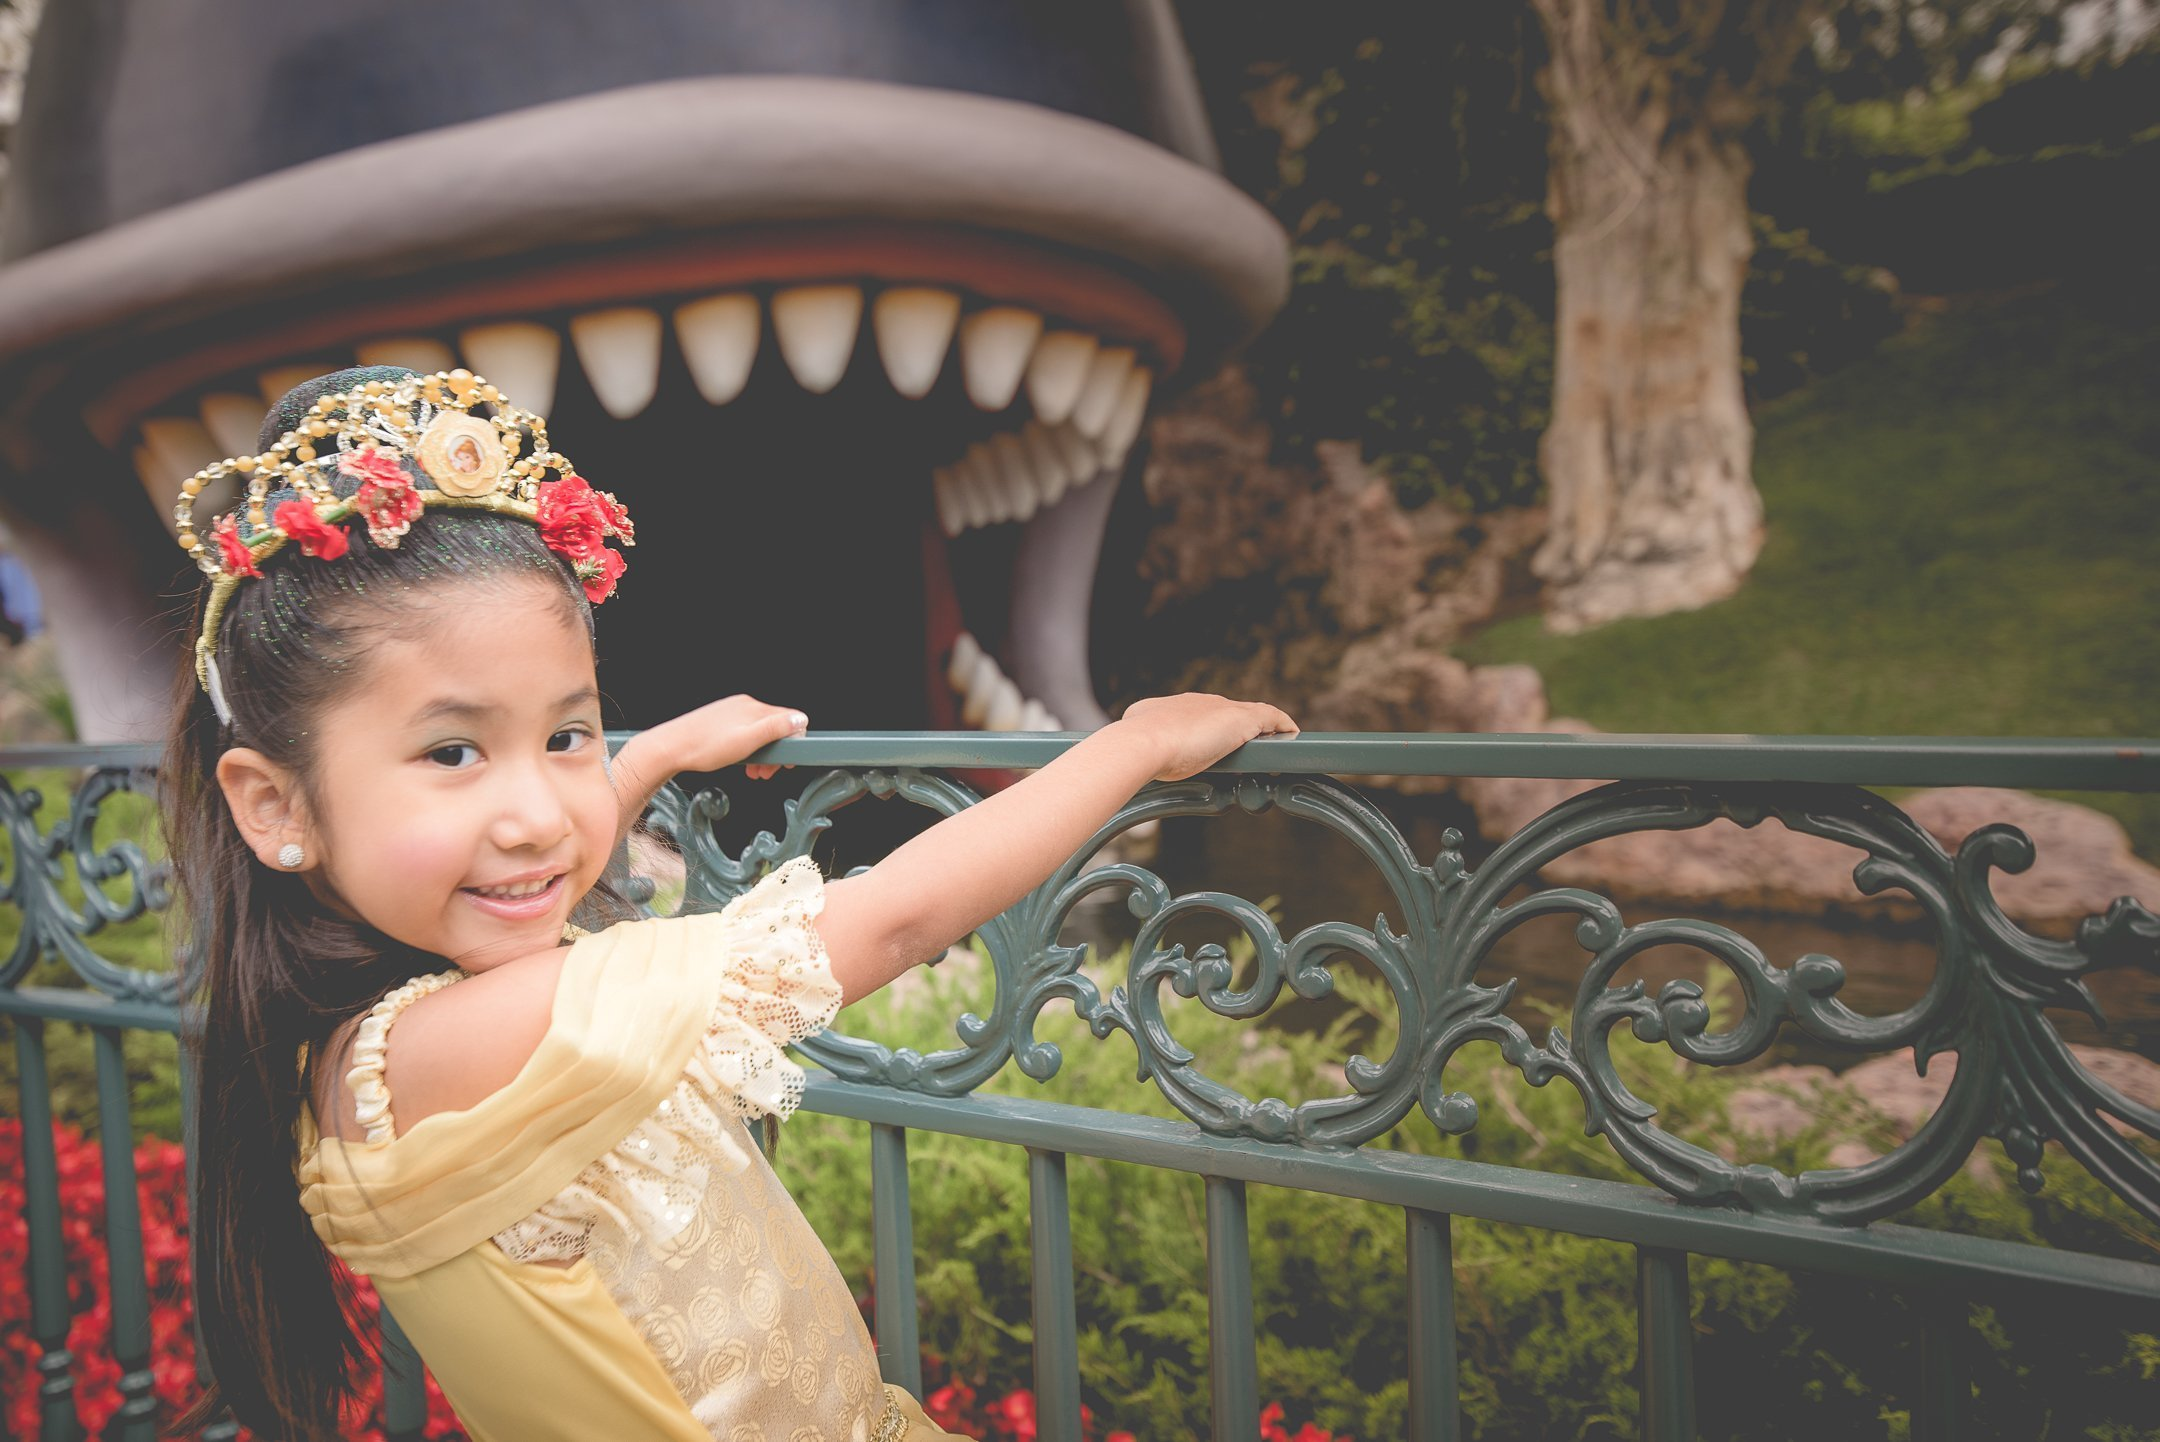 Girl with princess dress by the Storybook ride in Disneyland, CA